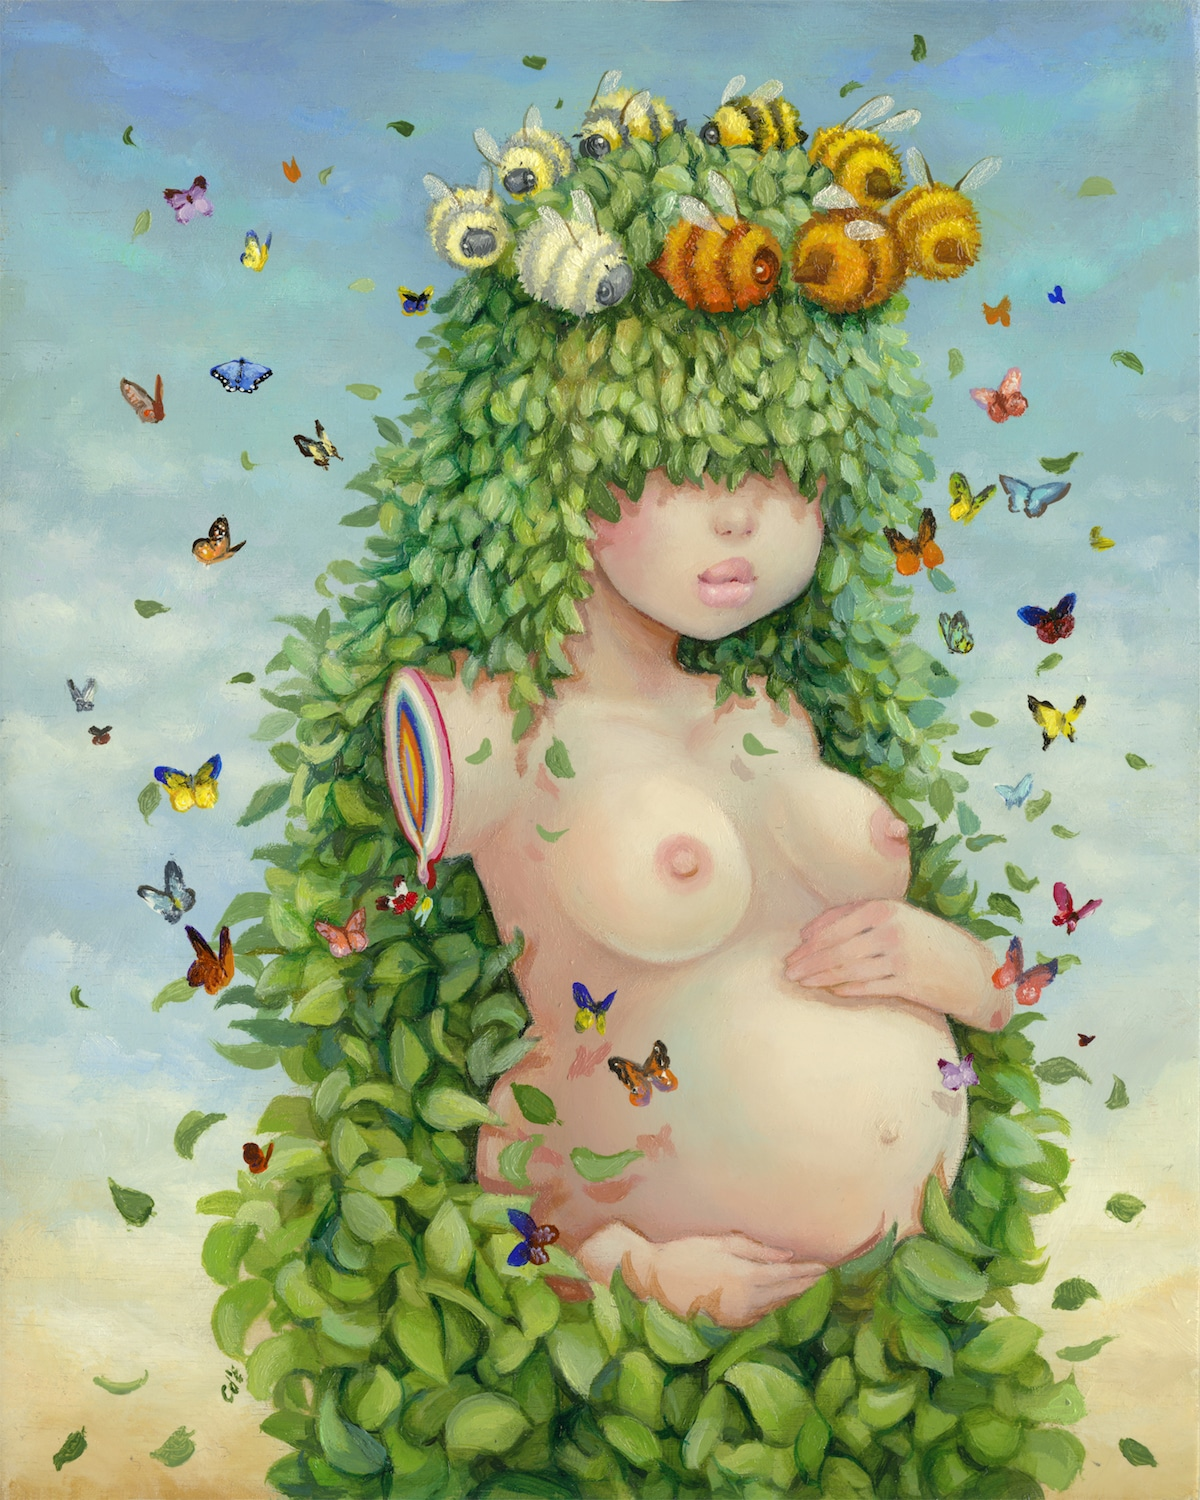 Mother and Child Group Art Exhibition at Dorothy Circus Gallery